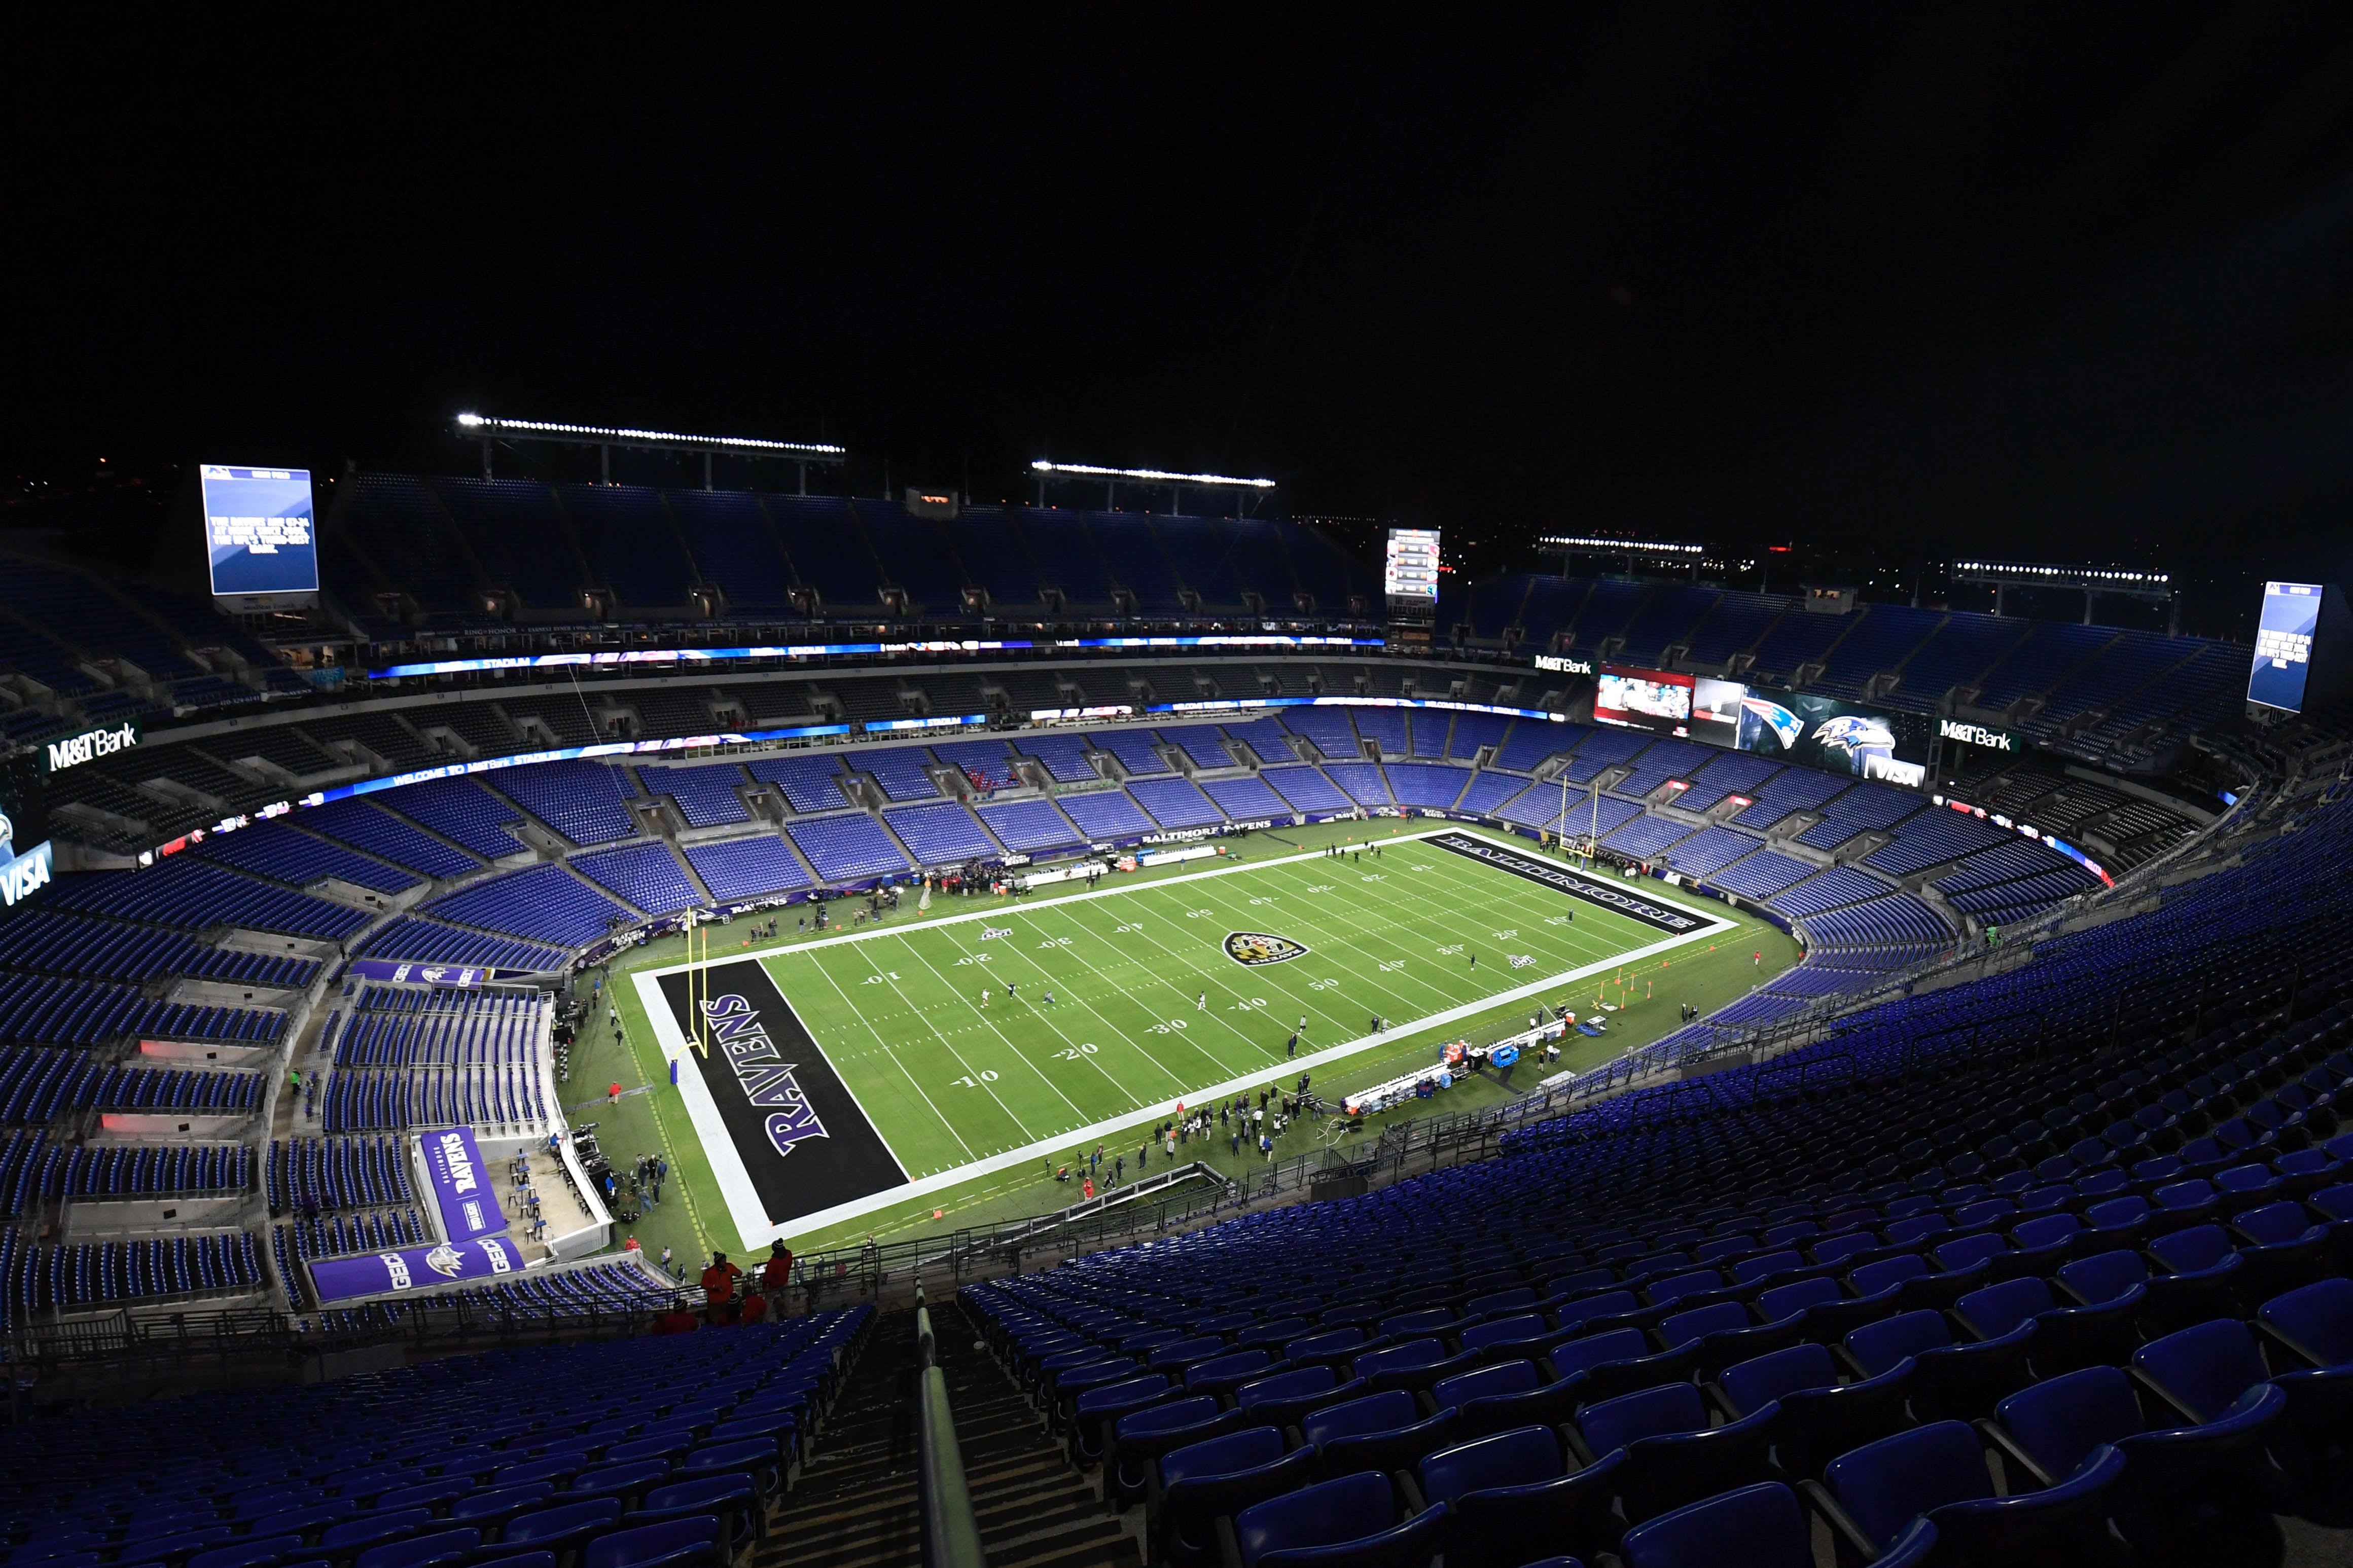 Ravens vs. Chiefs NFL Week 3: Time, TV channel and how to stream online